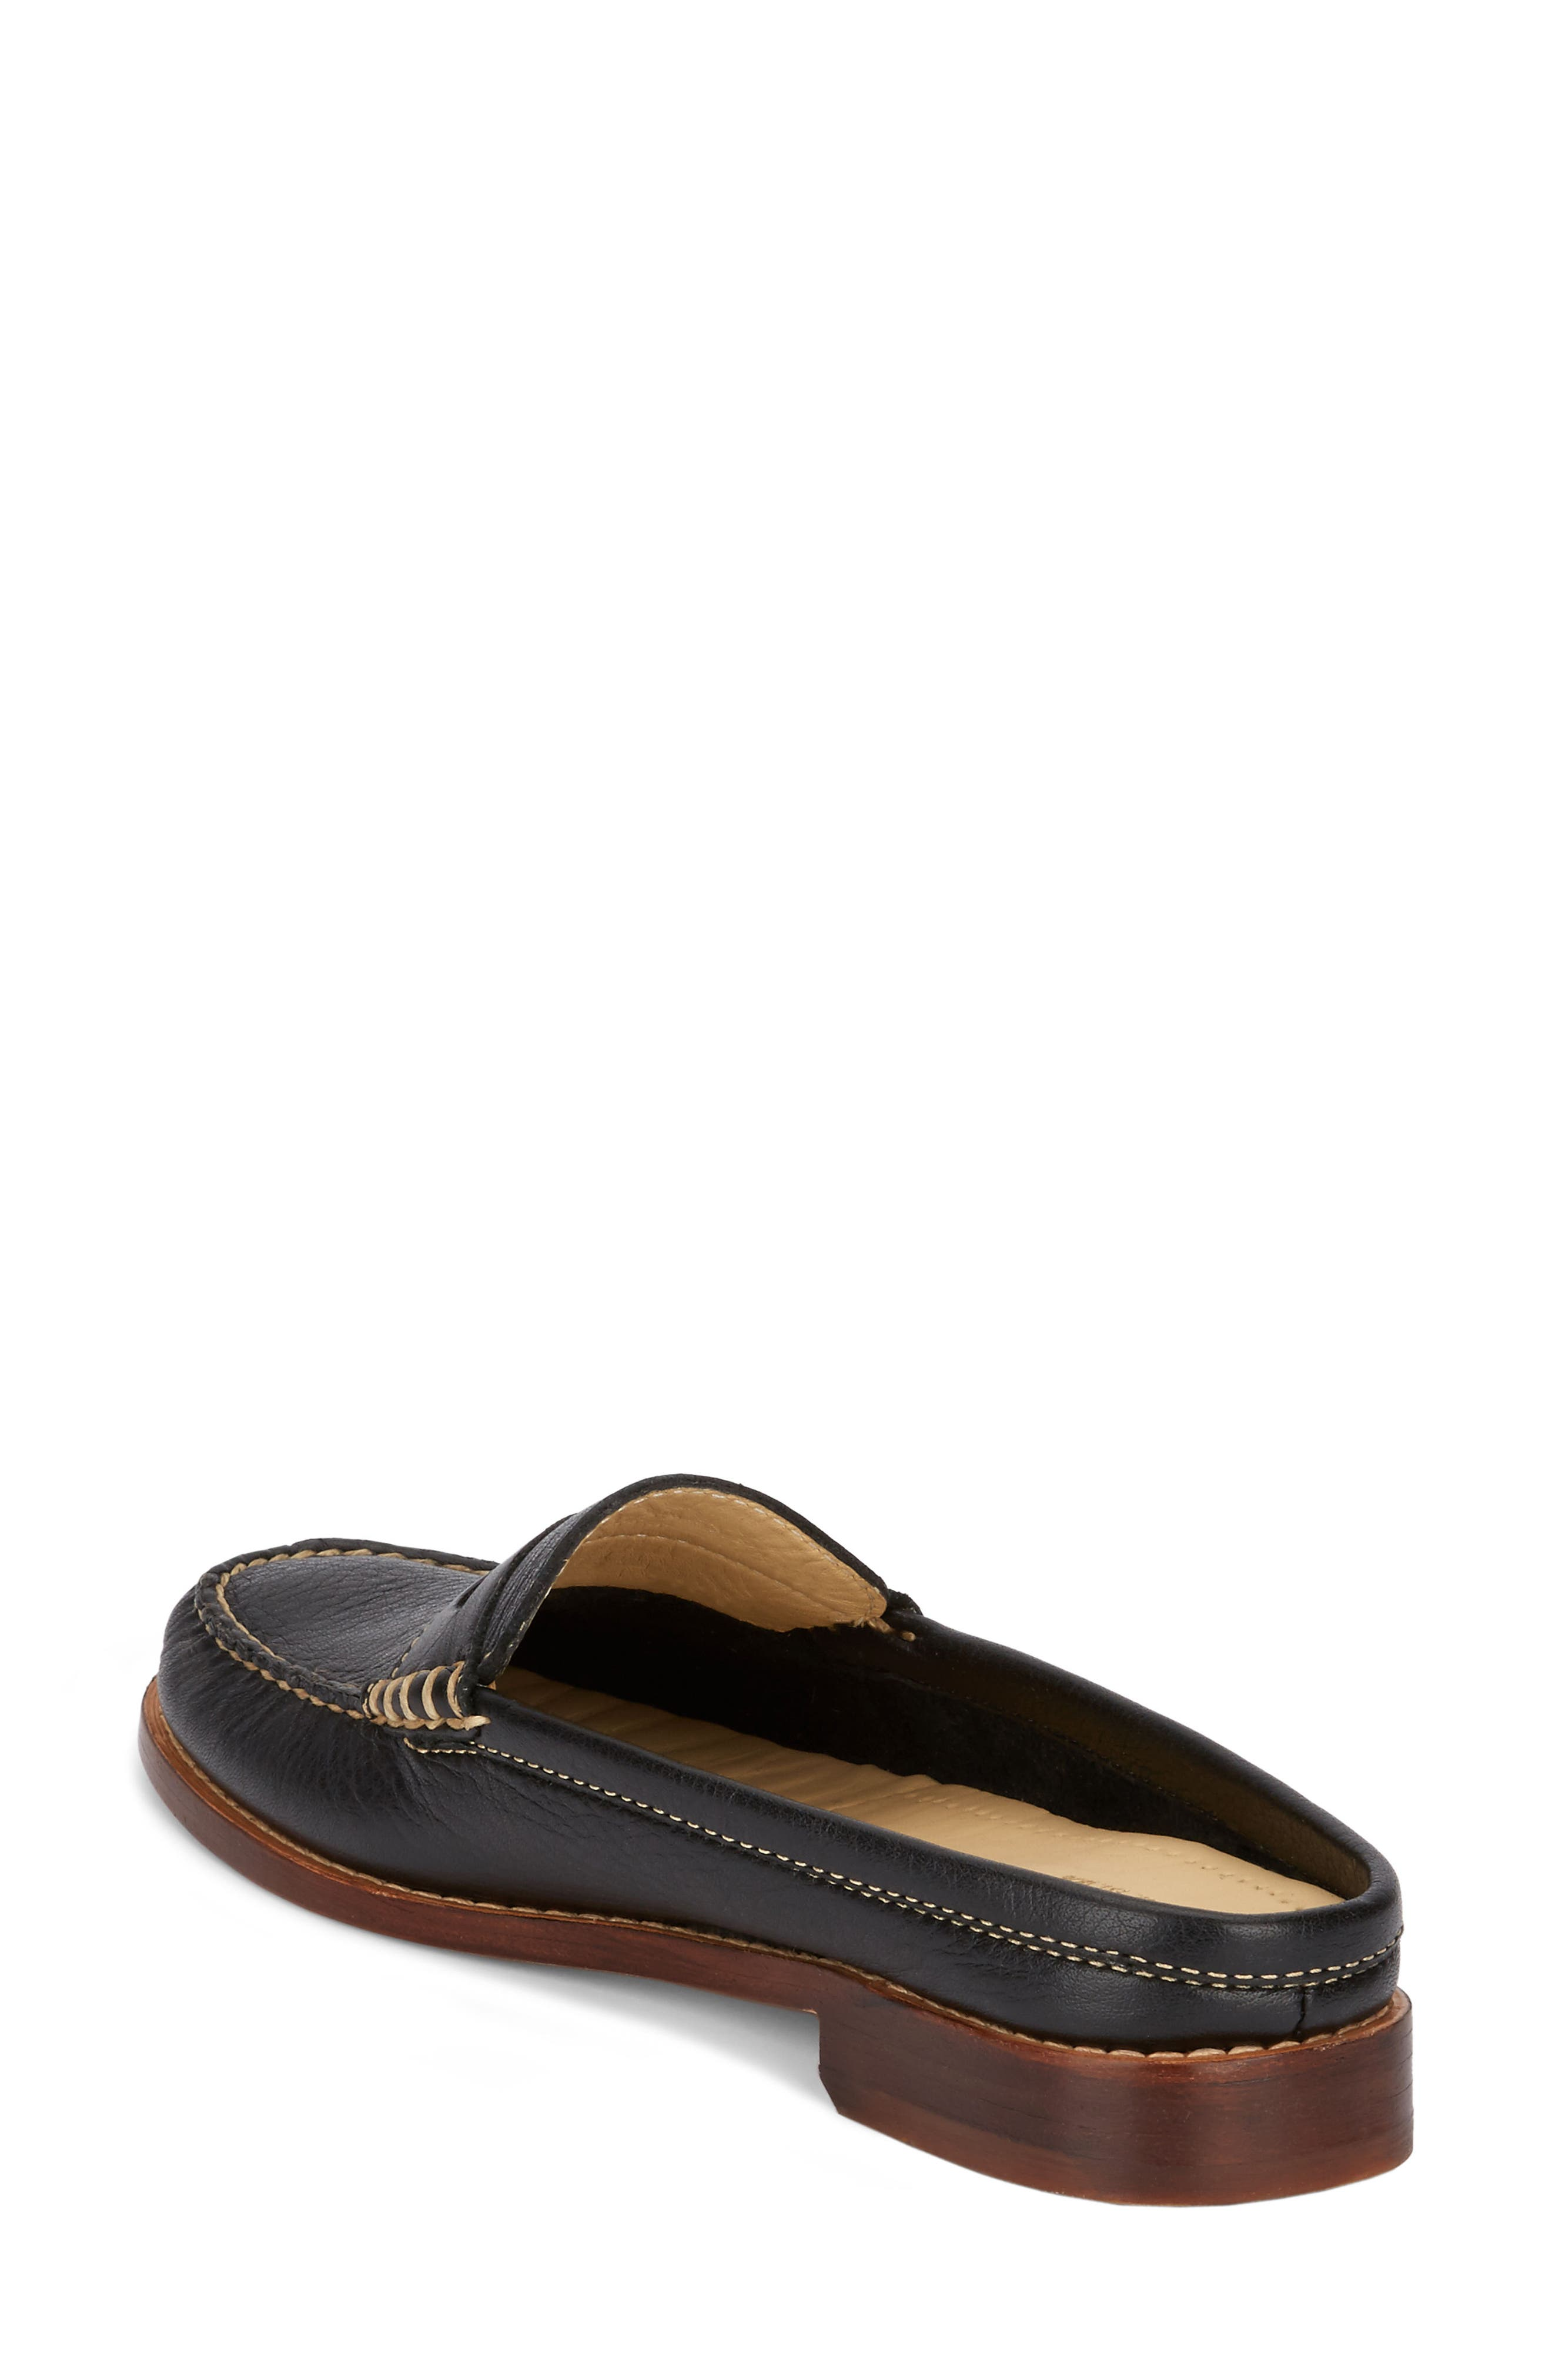 Wynn Loafer Mule,                             Alternate thumbnail 2, color,                             002